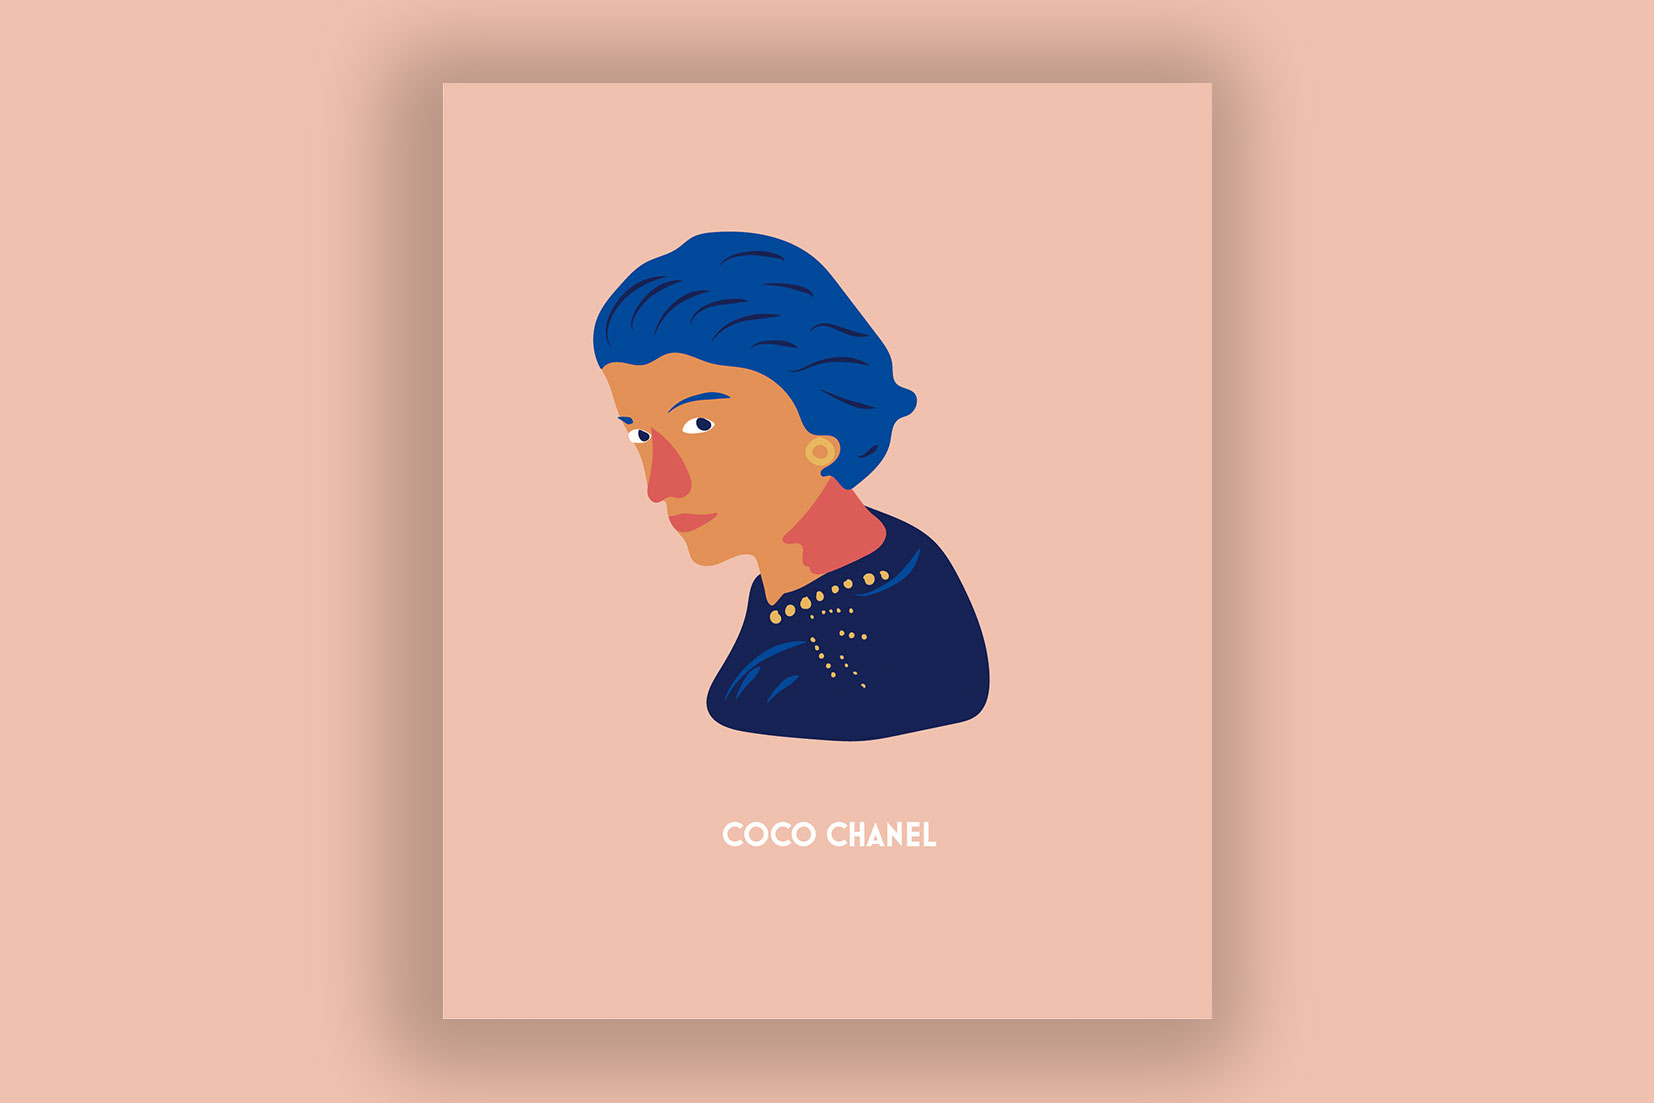 mujeres influyentes - Coco Chanel